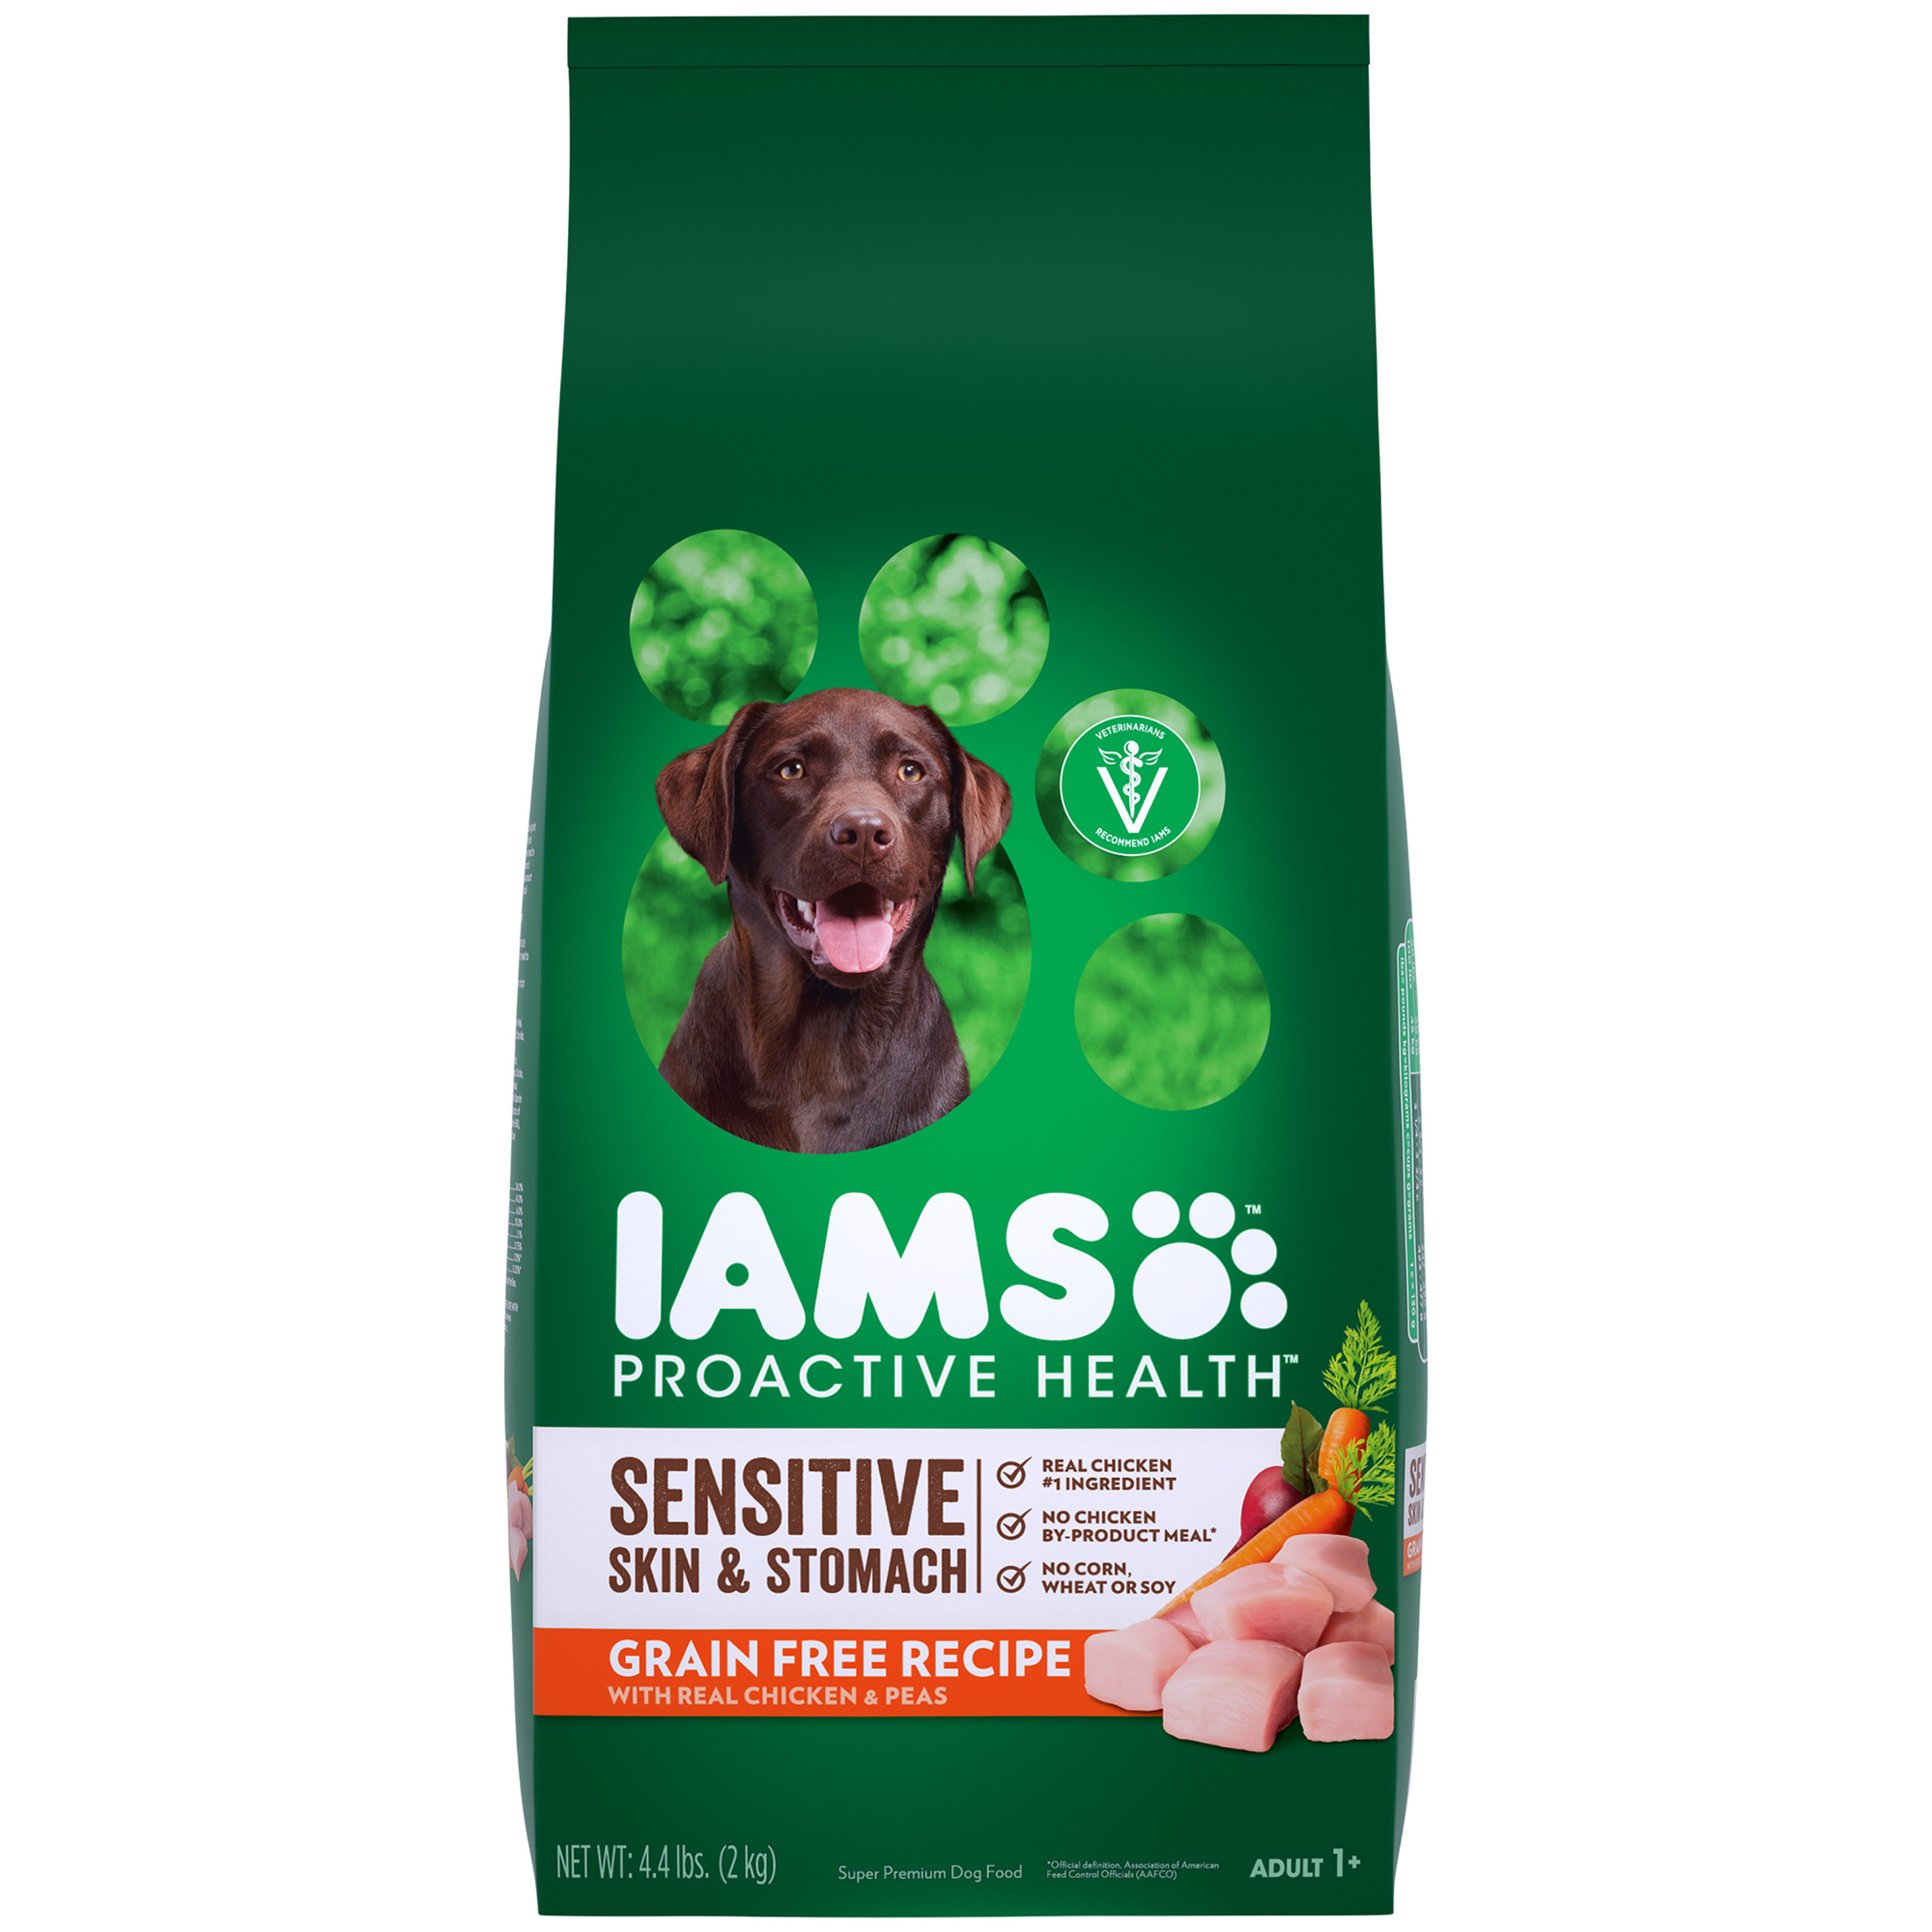 Iams Proactive Health Dry Dog Food, Sensitive Skin And Stomach Grain-Free With Real Chicken And Peas, 4.4 Lb